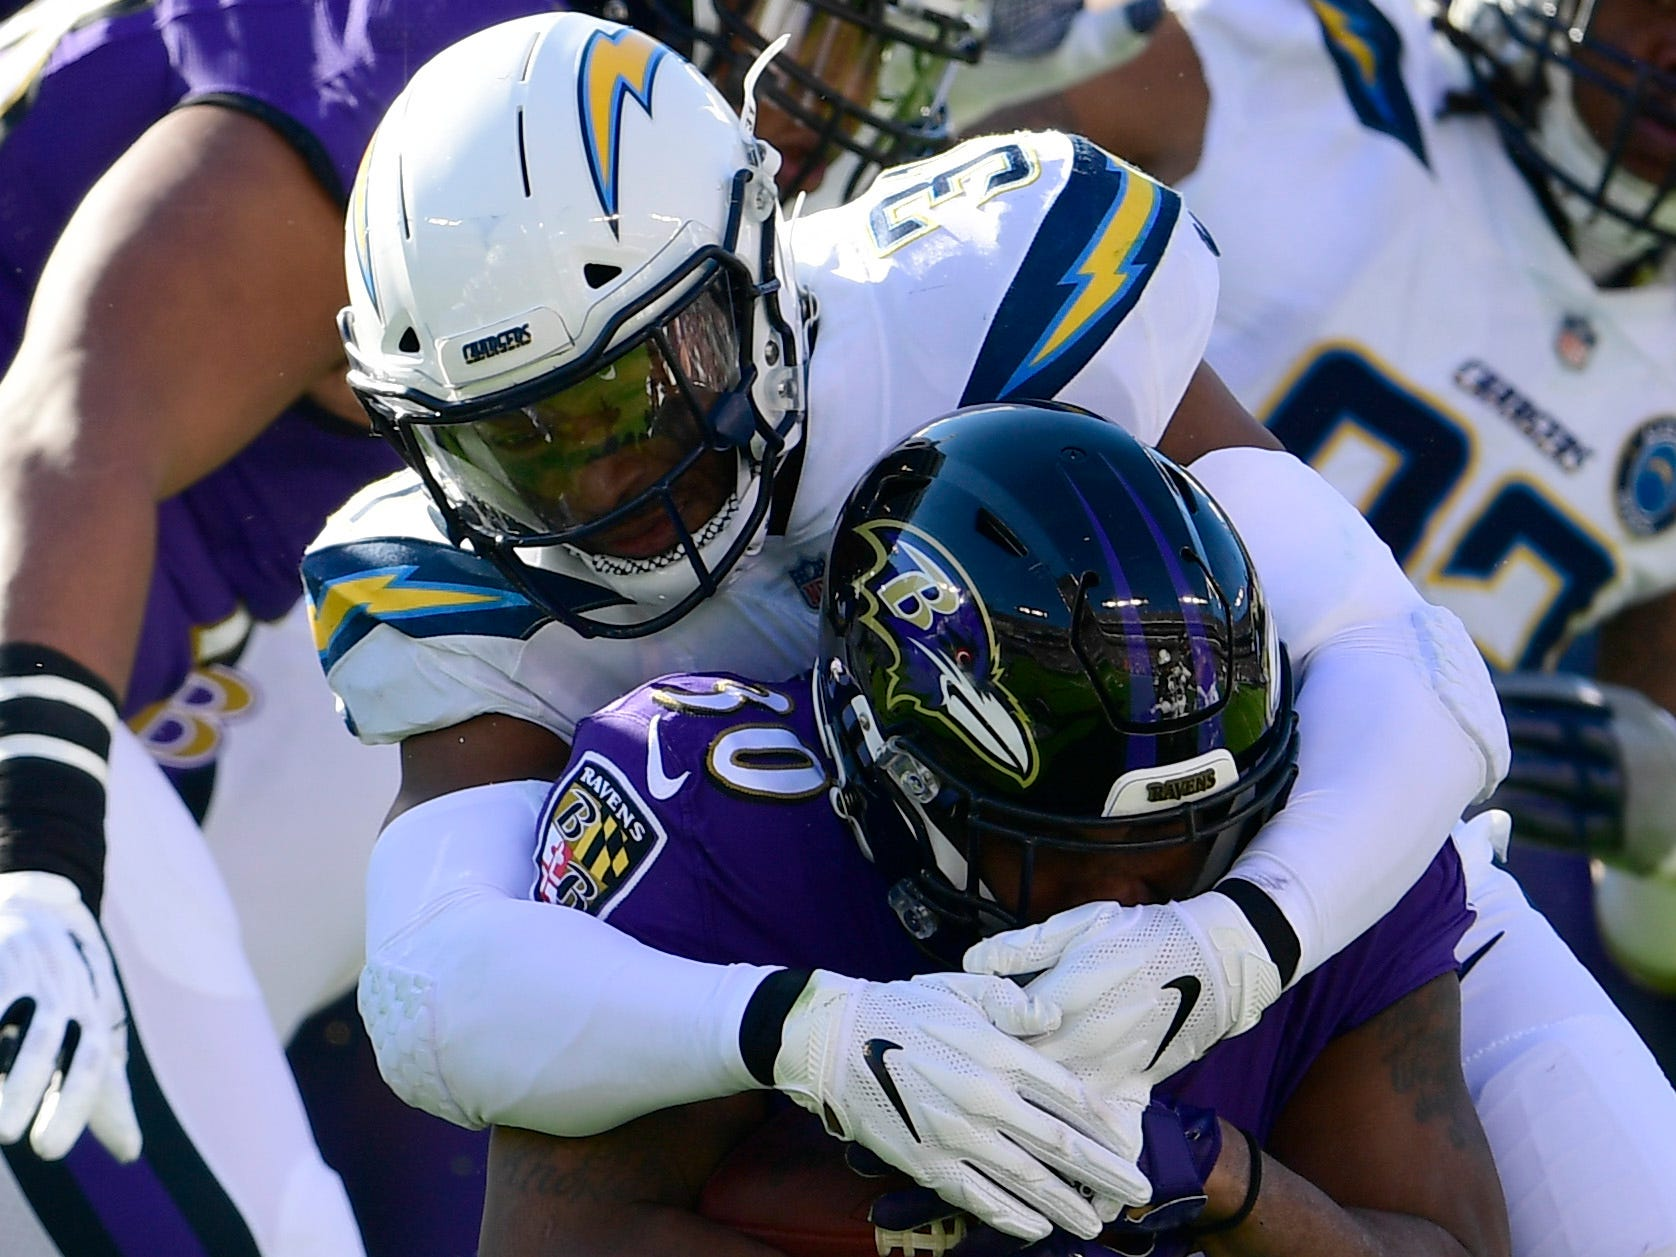 Jan 6, 2019; Baltimore, MD, USA; iLos Angeles Chargers safety Adrian Phillips (31) tackles Baltimore Ravens running back Kenneth Dixon (30) dung the first quarter n a AFC Wild Card playoff football game at M&T Bank Stadium. Mandatory Credit: Tommy Gilligan-USA TODAY Sports